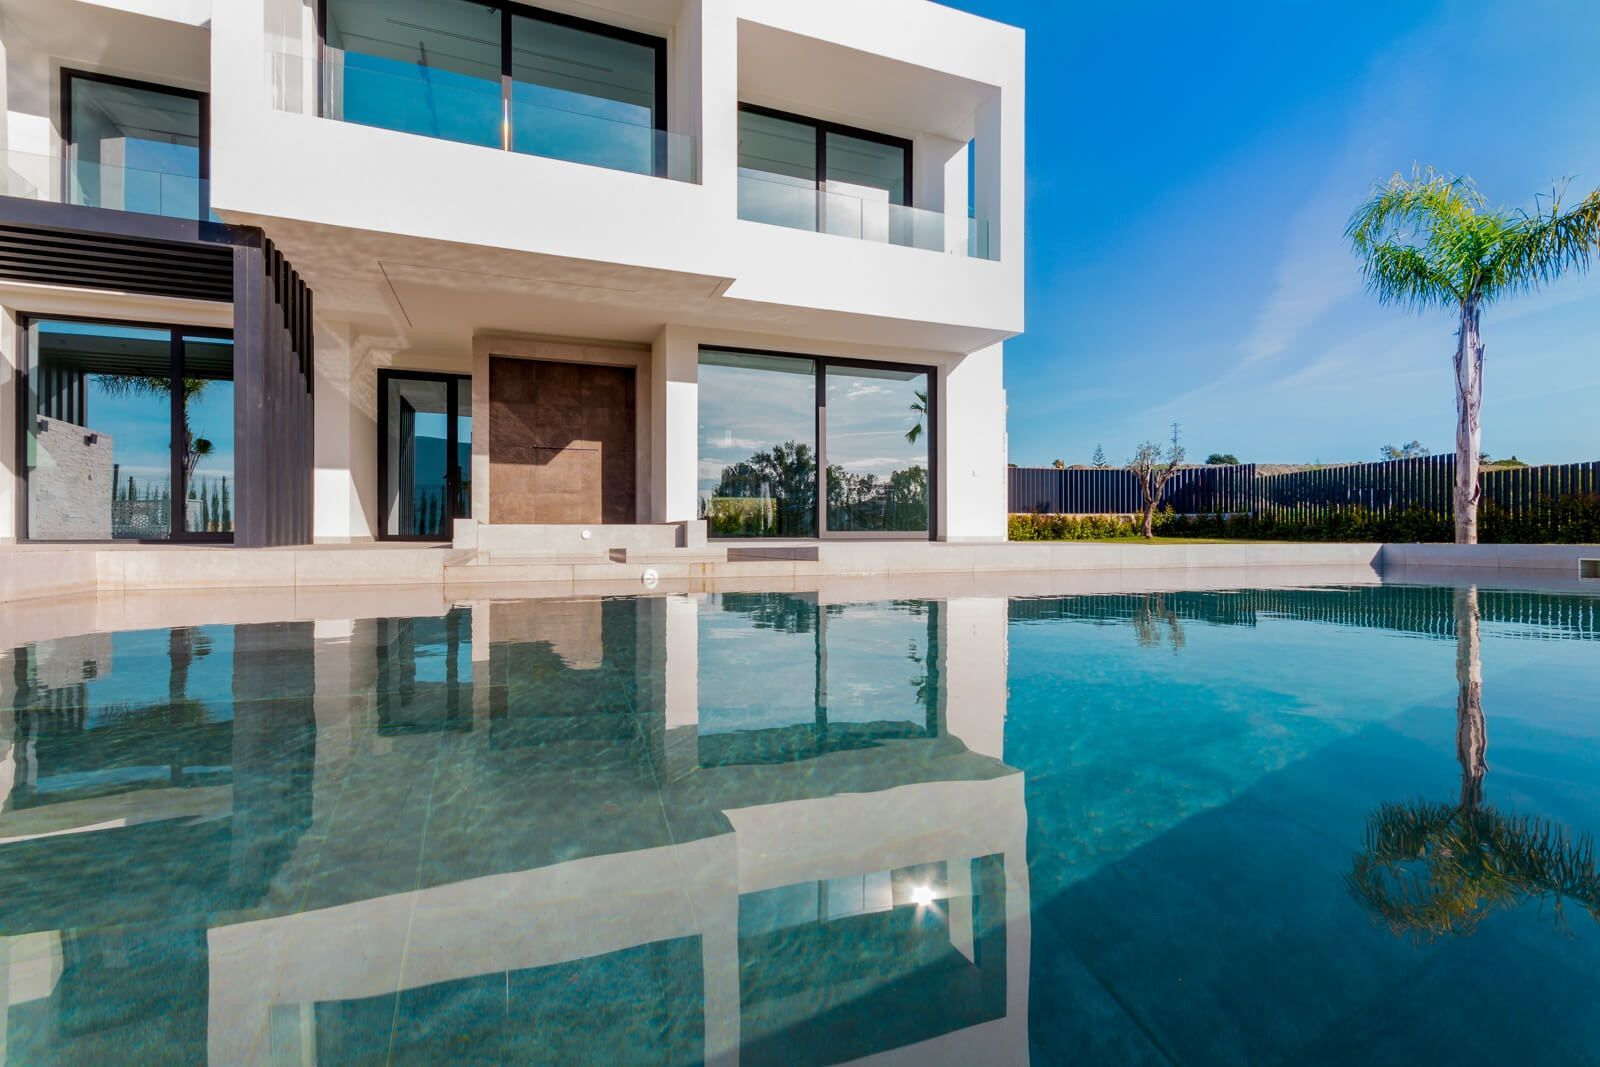 Luxury villas for sale in Estepona, Marbella, Costa del Sol.